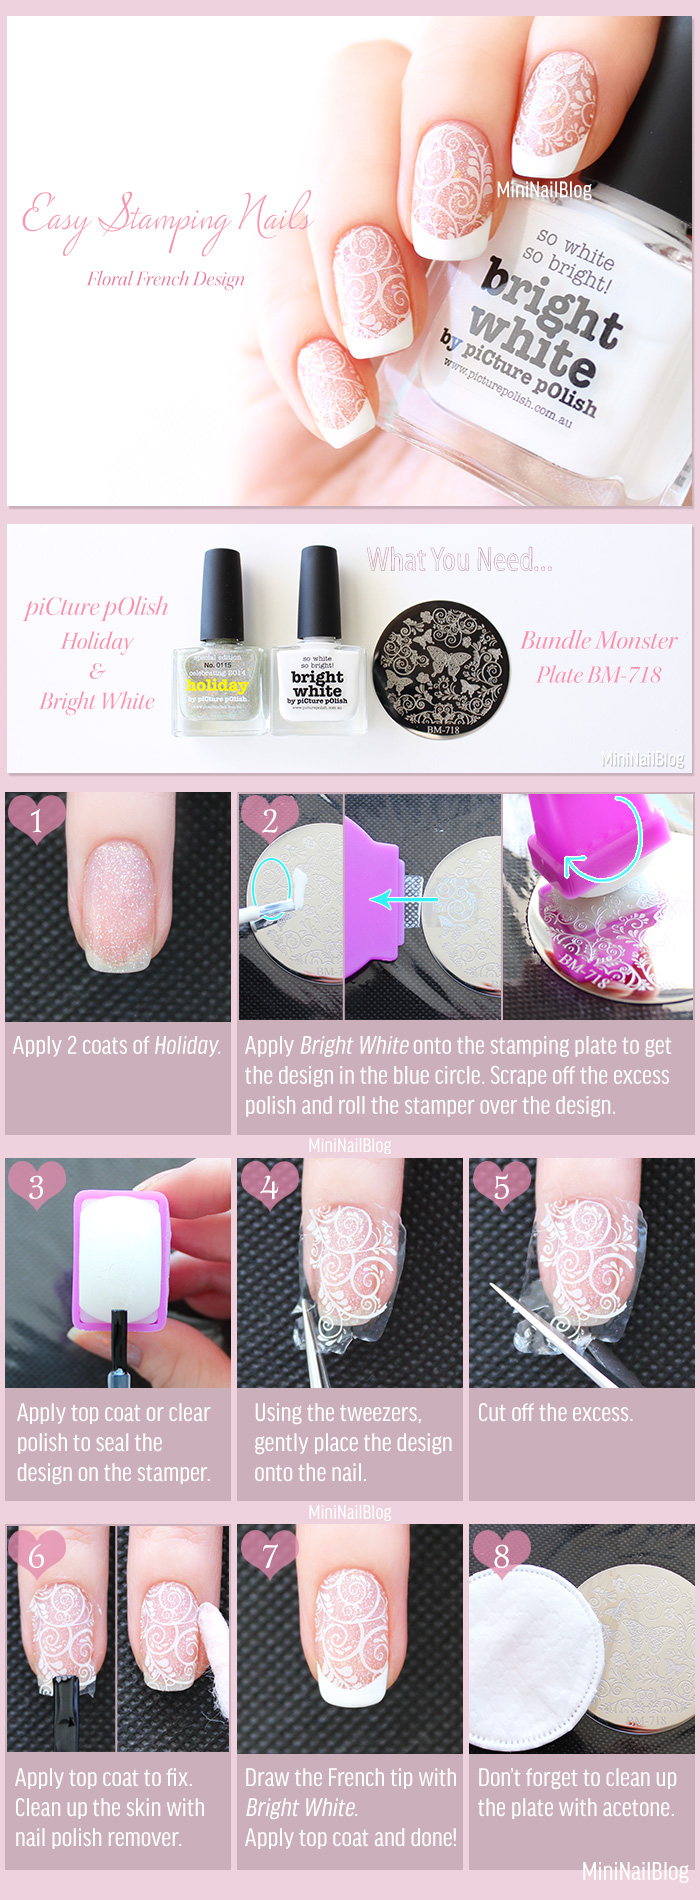 Easy Stamping Nails Tutorial